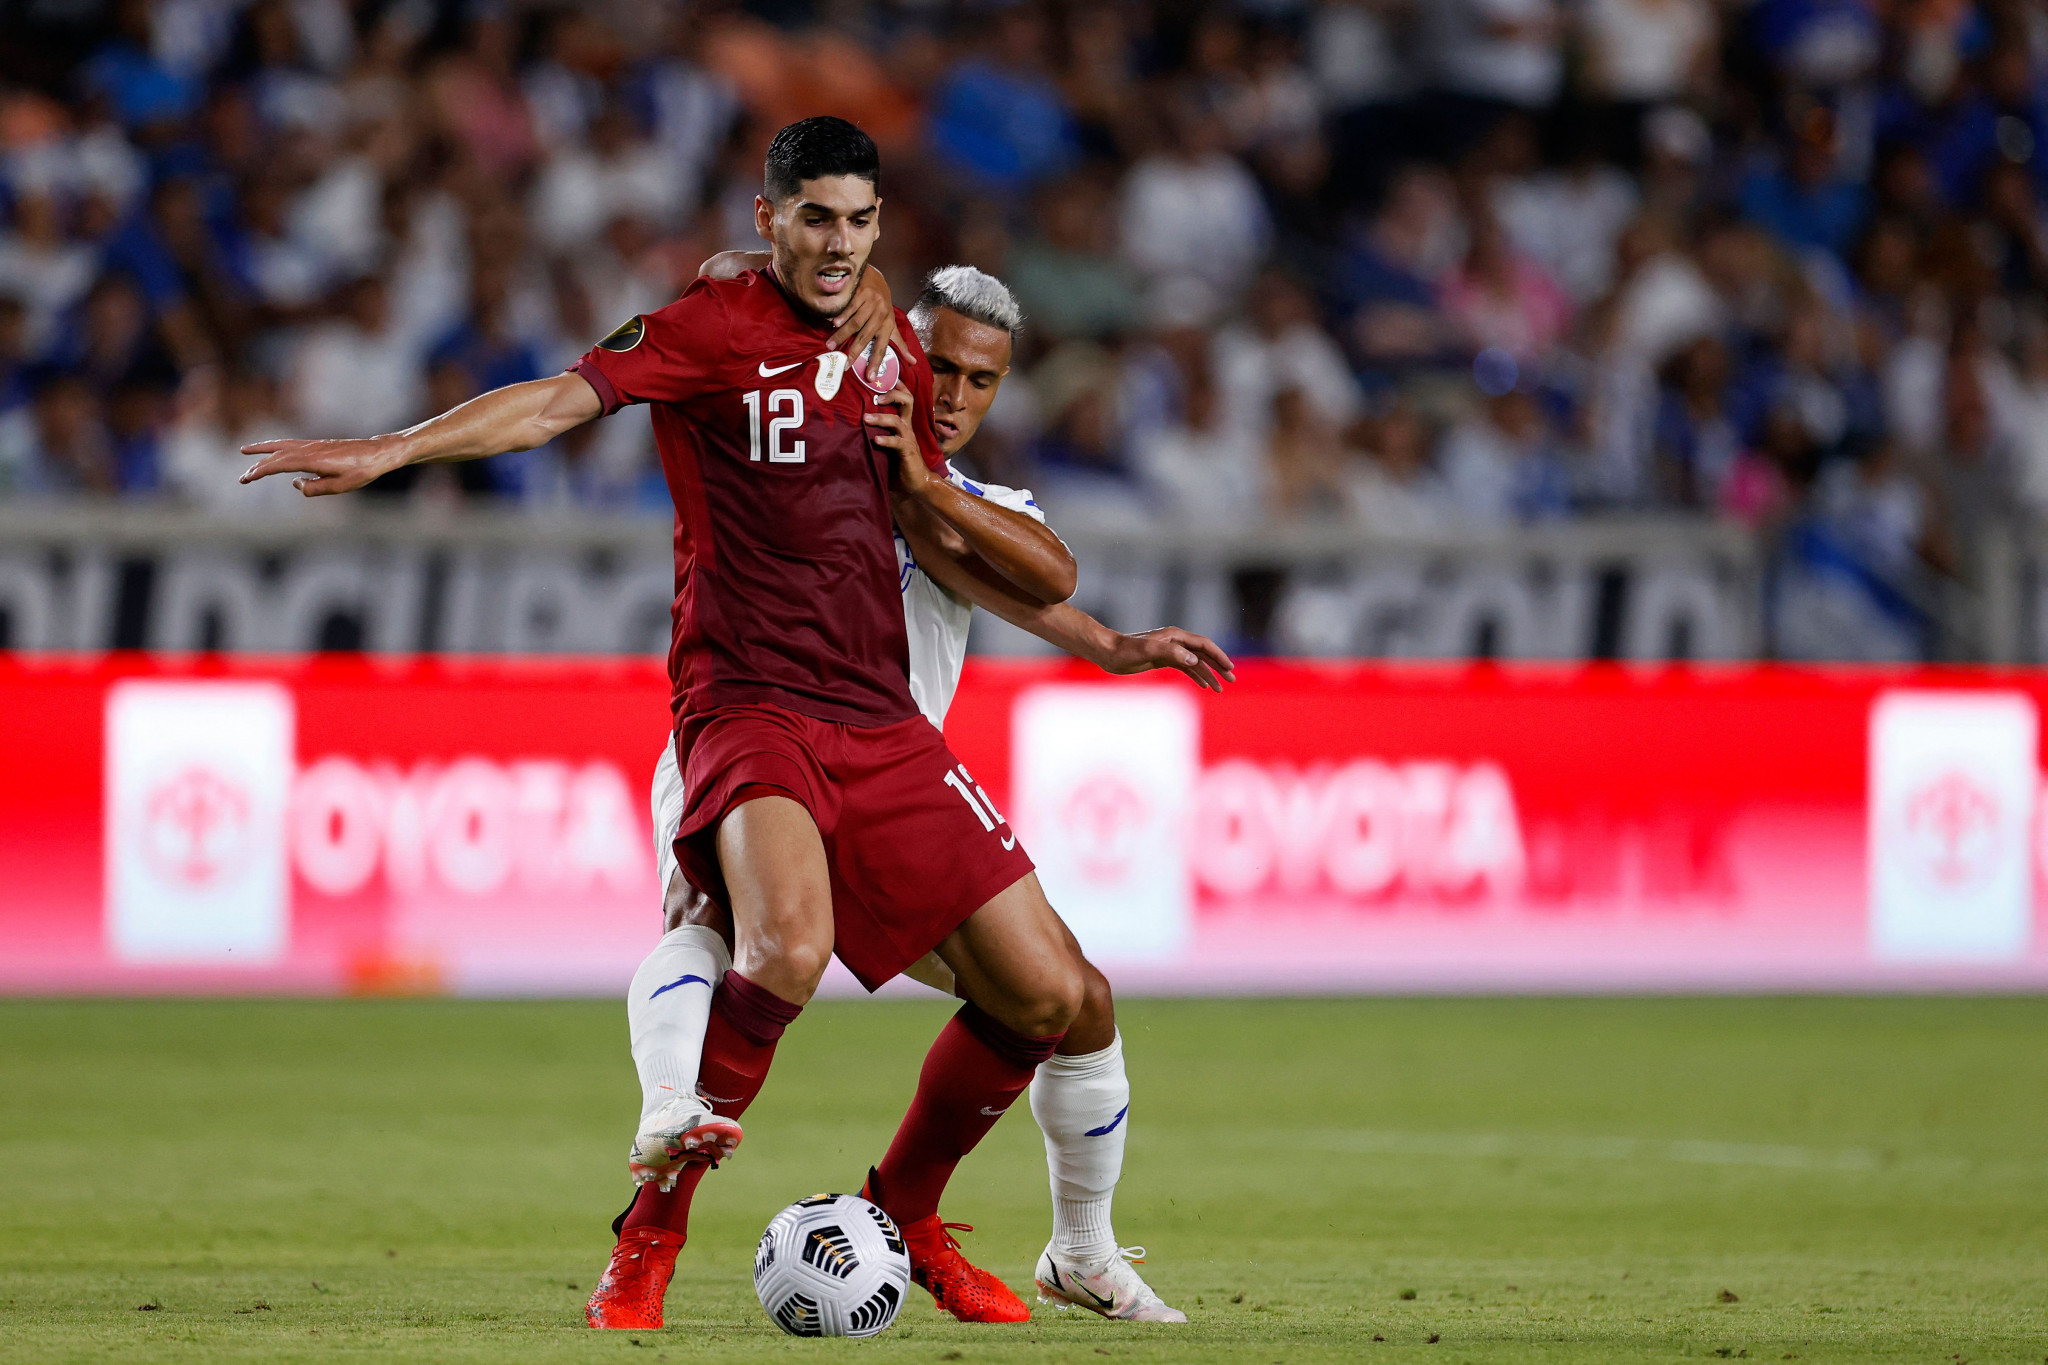 Qatar progress to quarter-finals as Suriname claim first-ever Gold Cup win